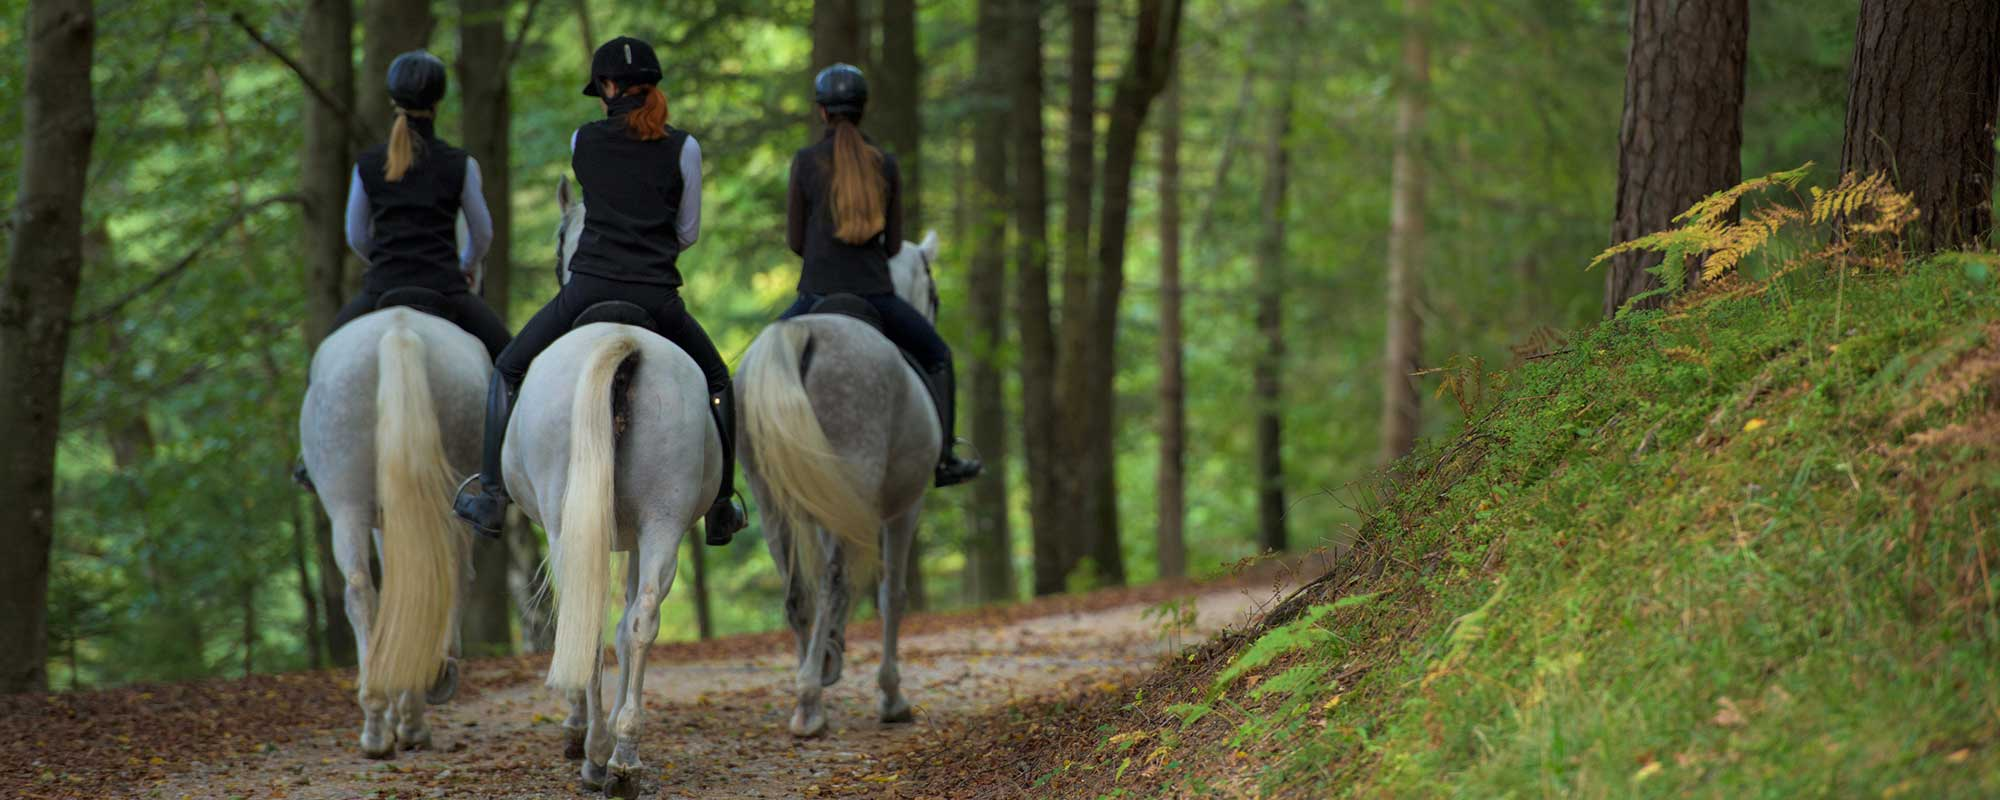 Three women riding horses on path in woods